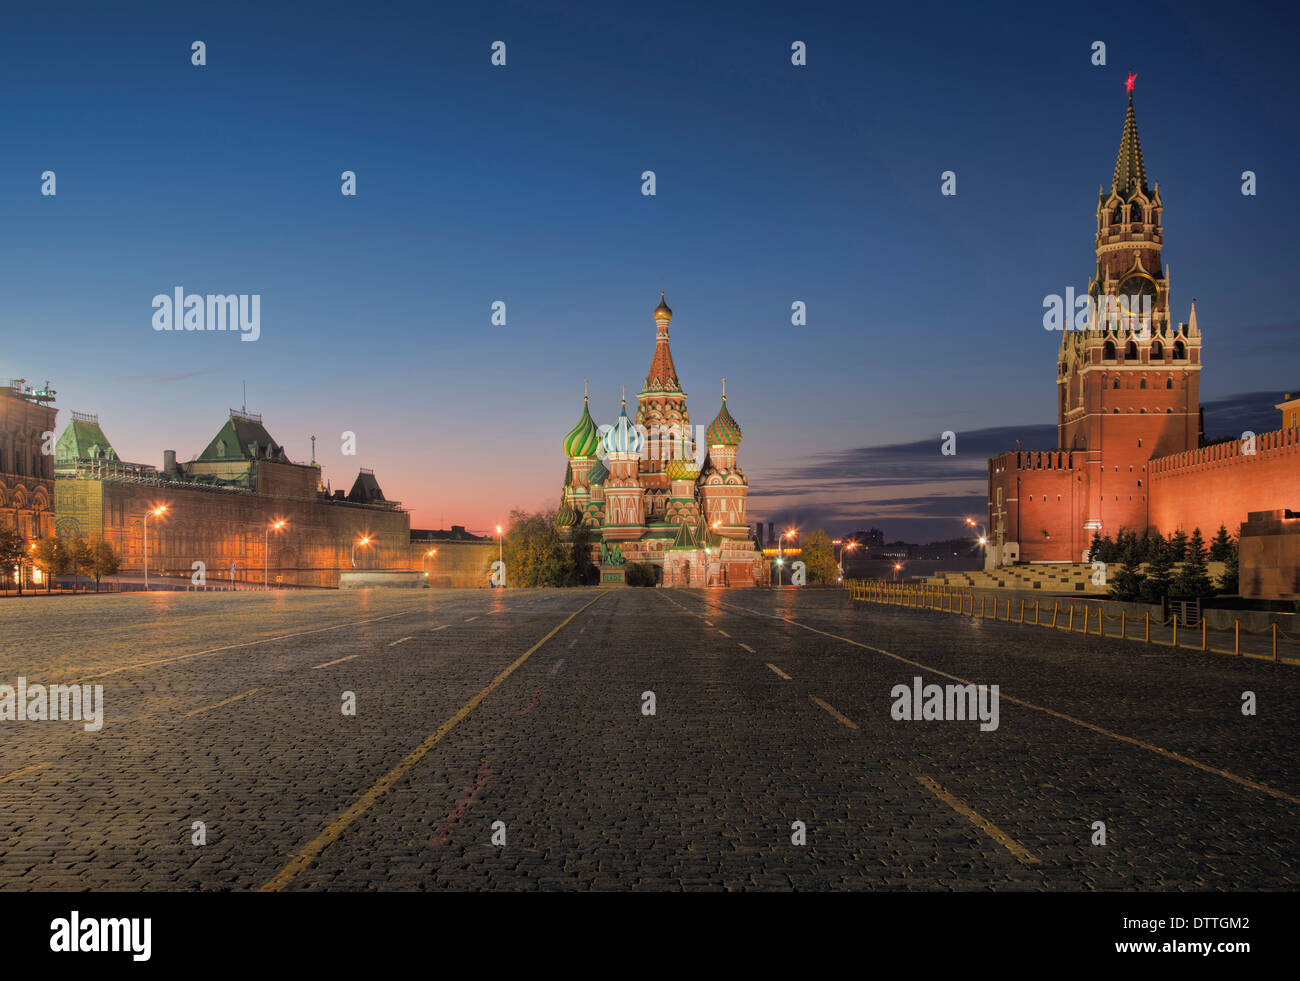 Kremlin, Saint Basil's Cathedral, and Red Square, Moscow, Russia - Stock Image